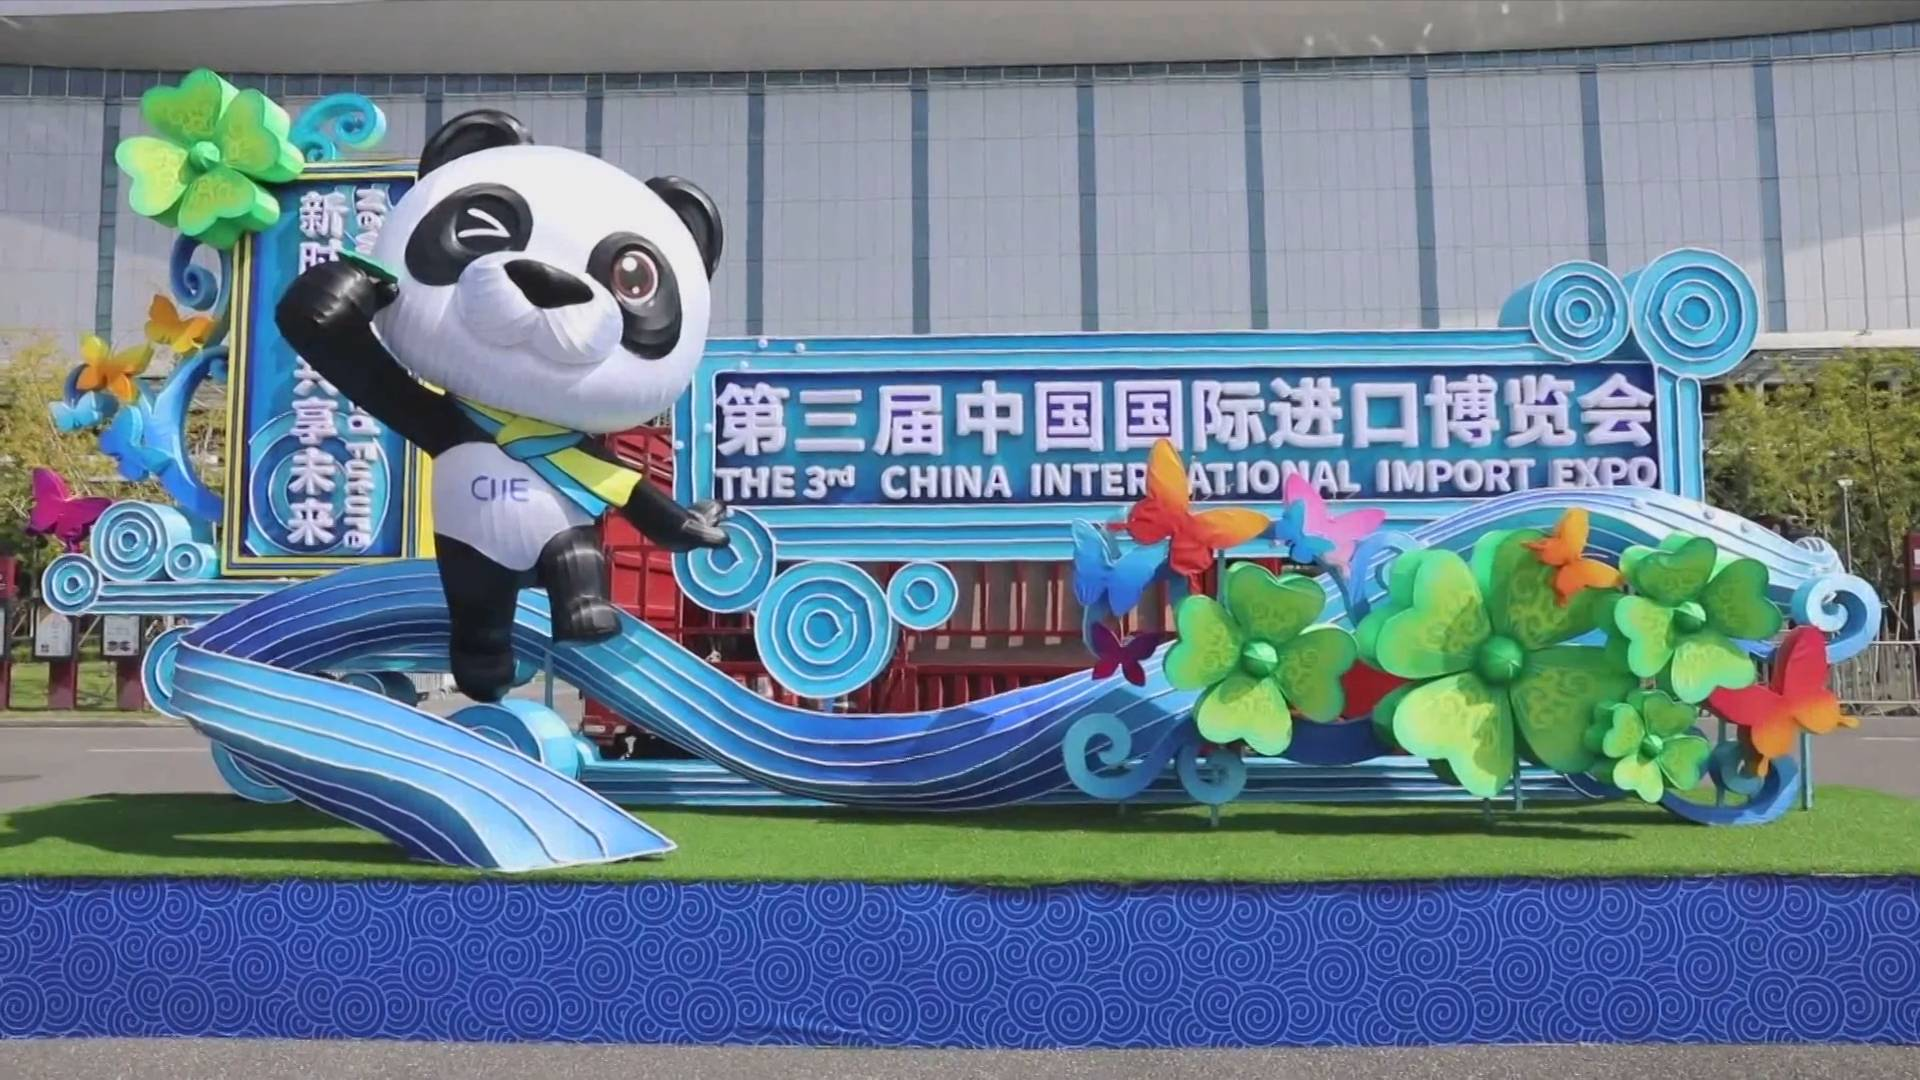 China import expo provides impetus for economic recovery along B&R